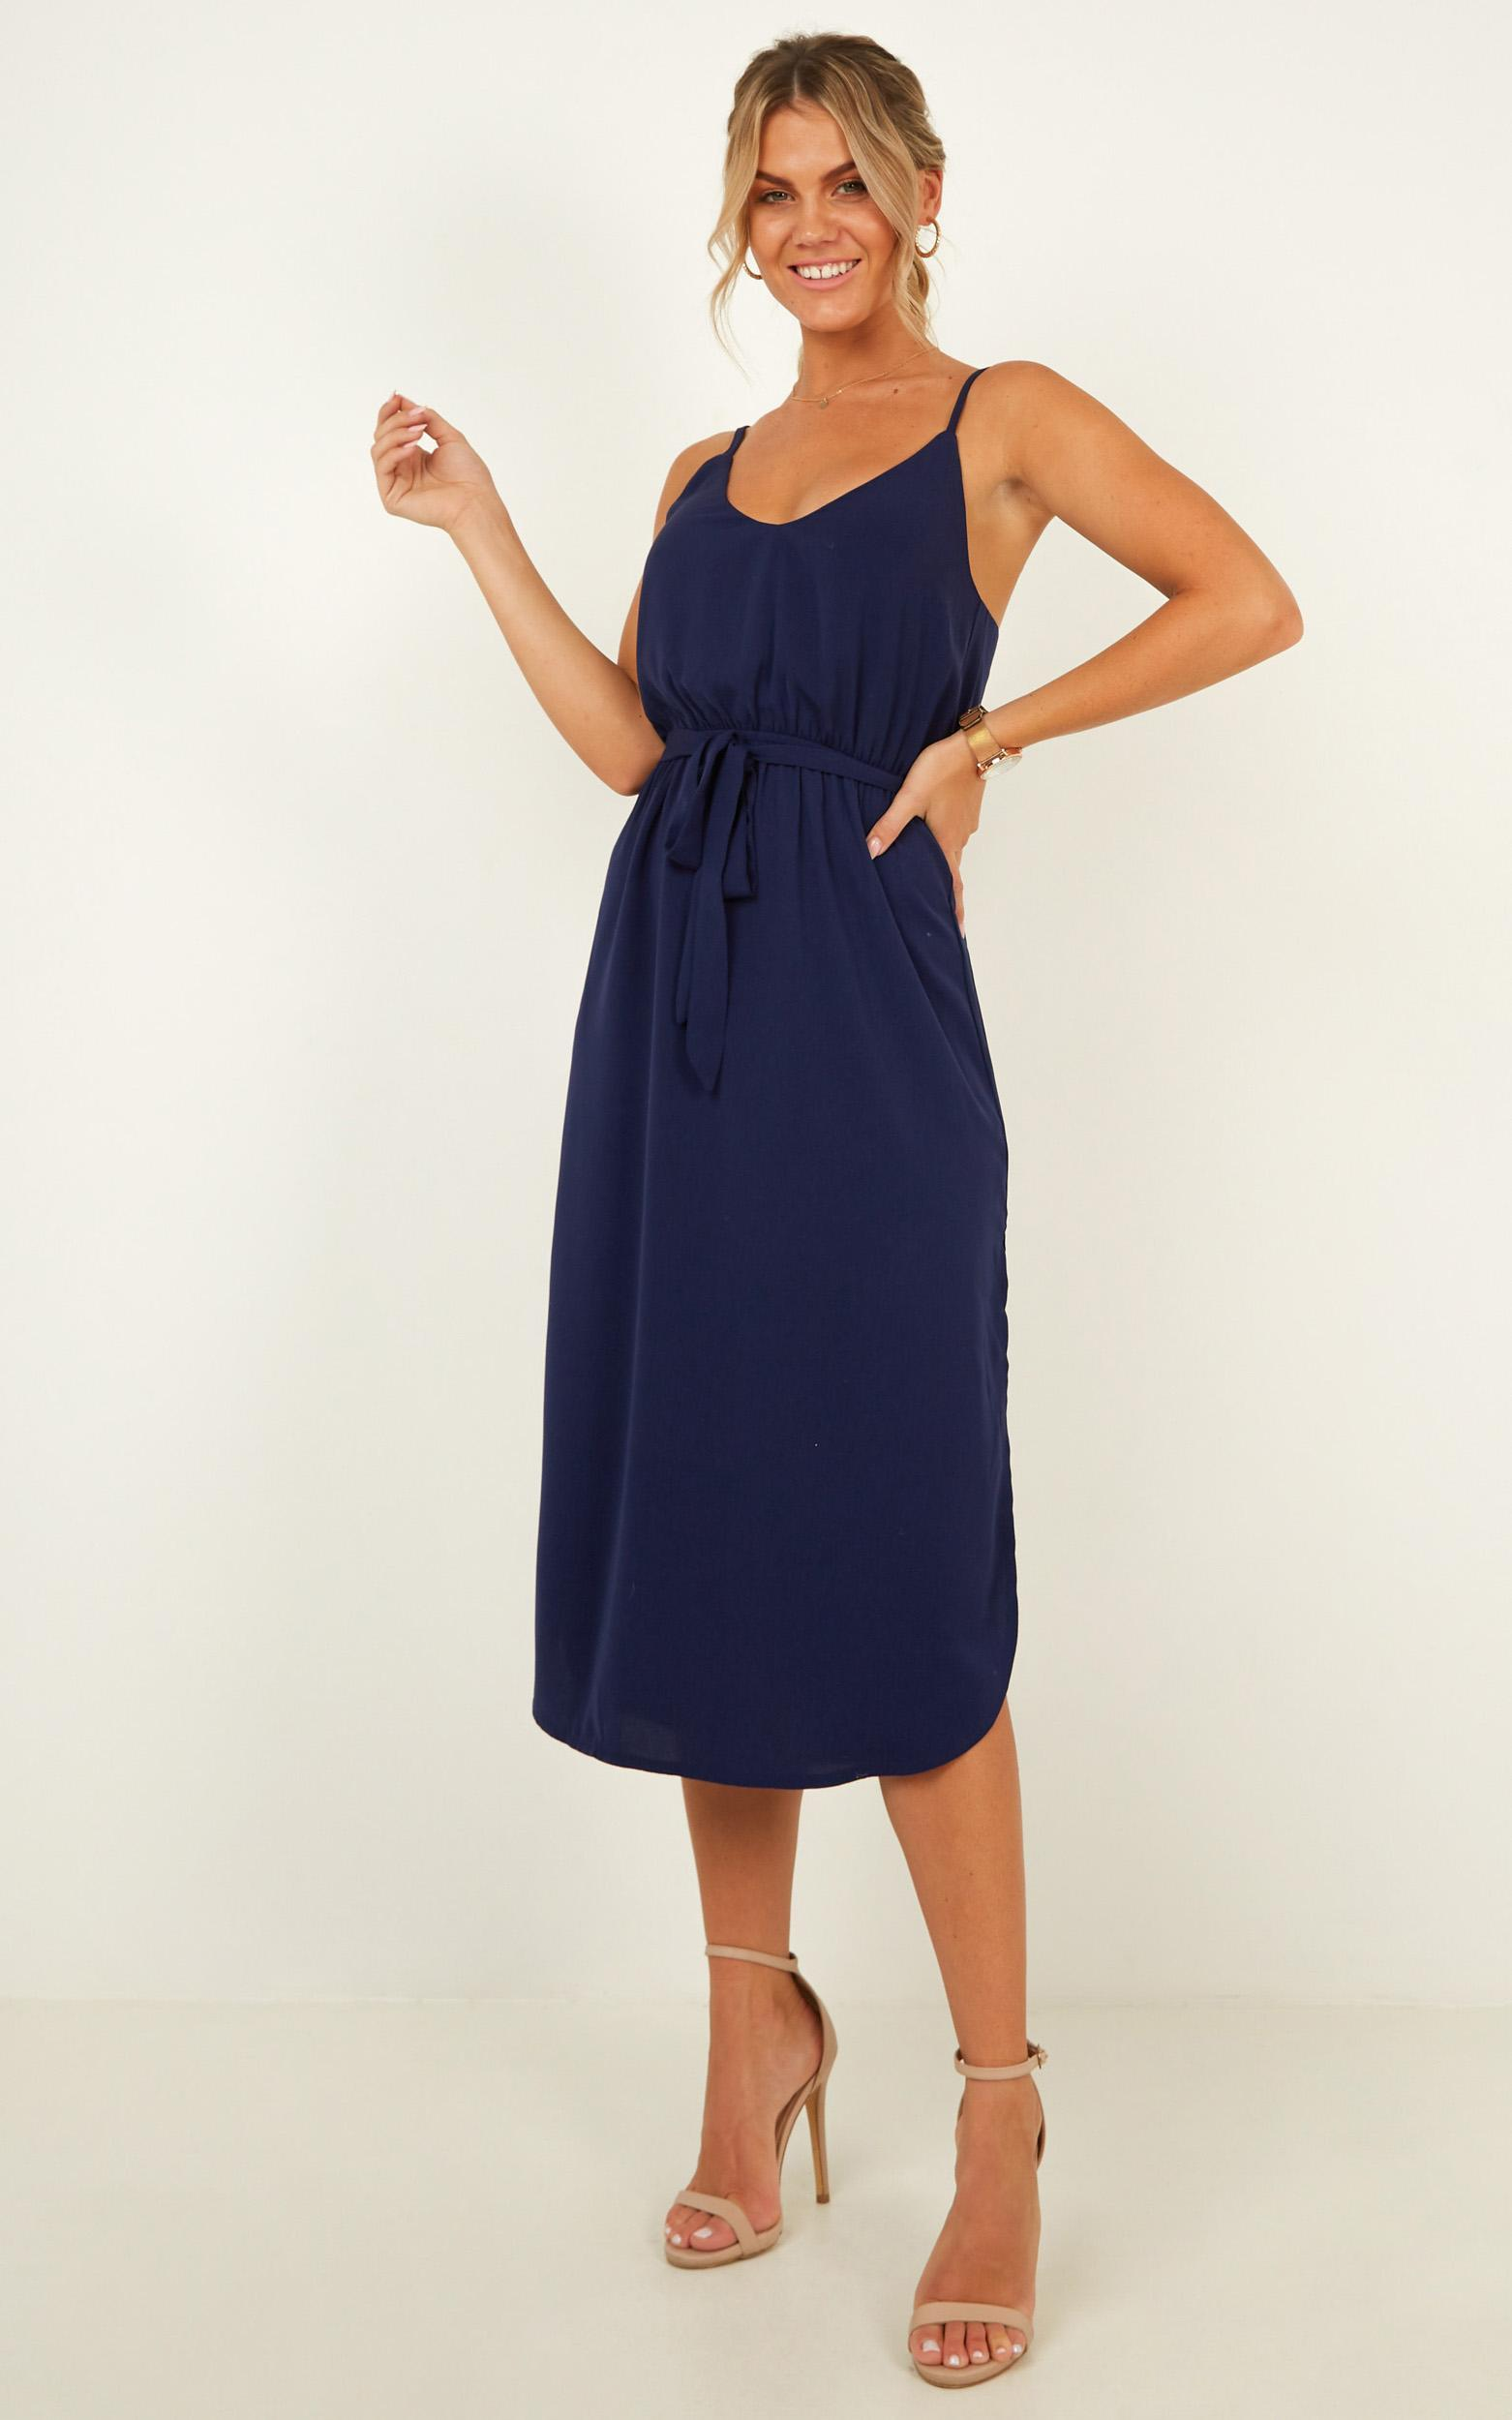 Straight For You Dress in navy - 20 (XXXXL), Navy, hi-res image number null